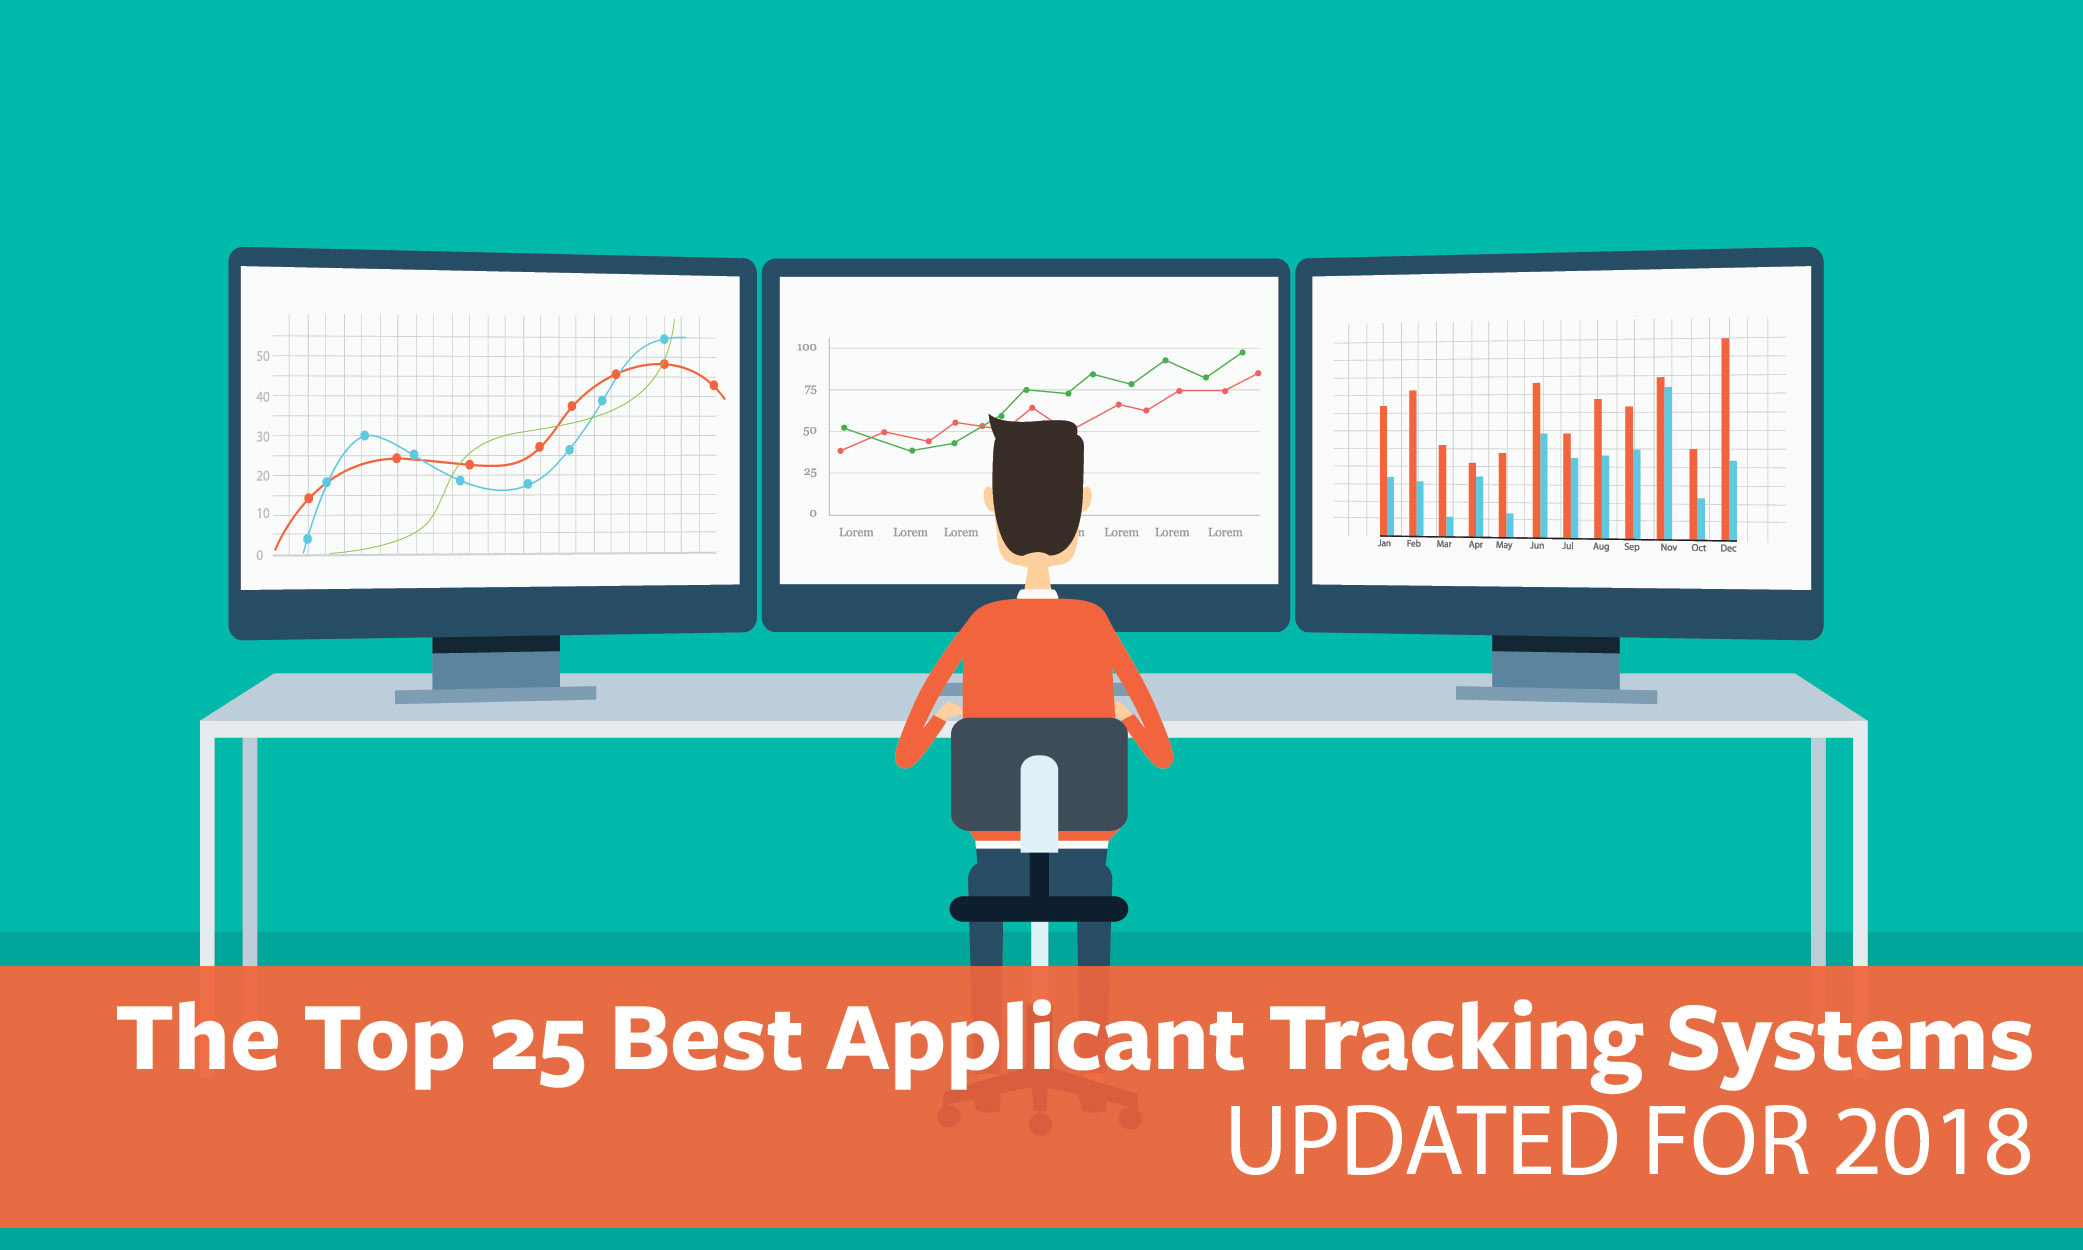 The Top 25 Best Applicant Tracking Systems (Updated for 2018